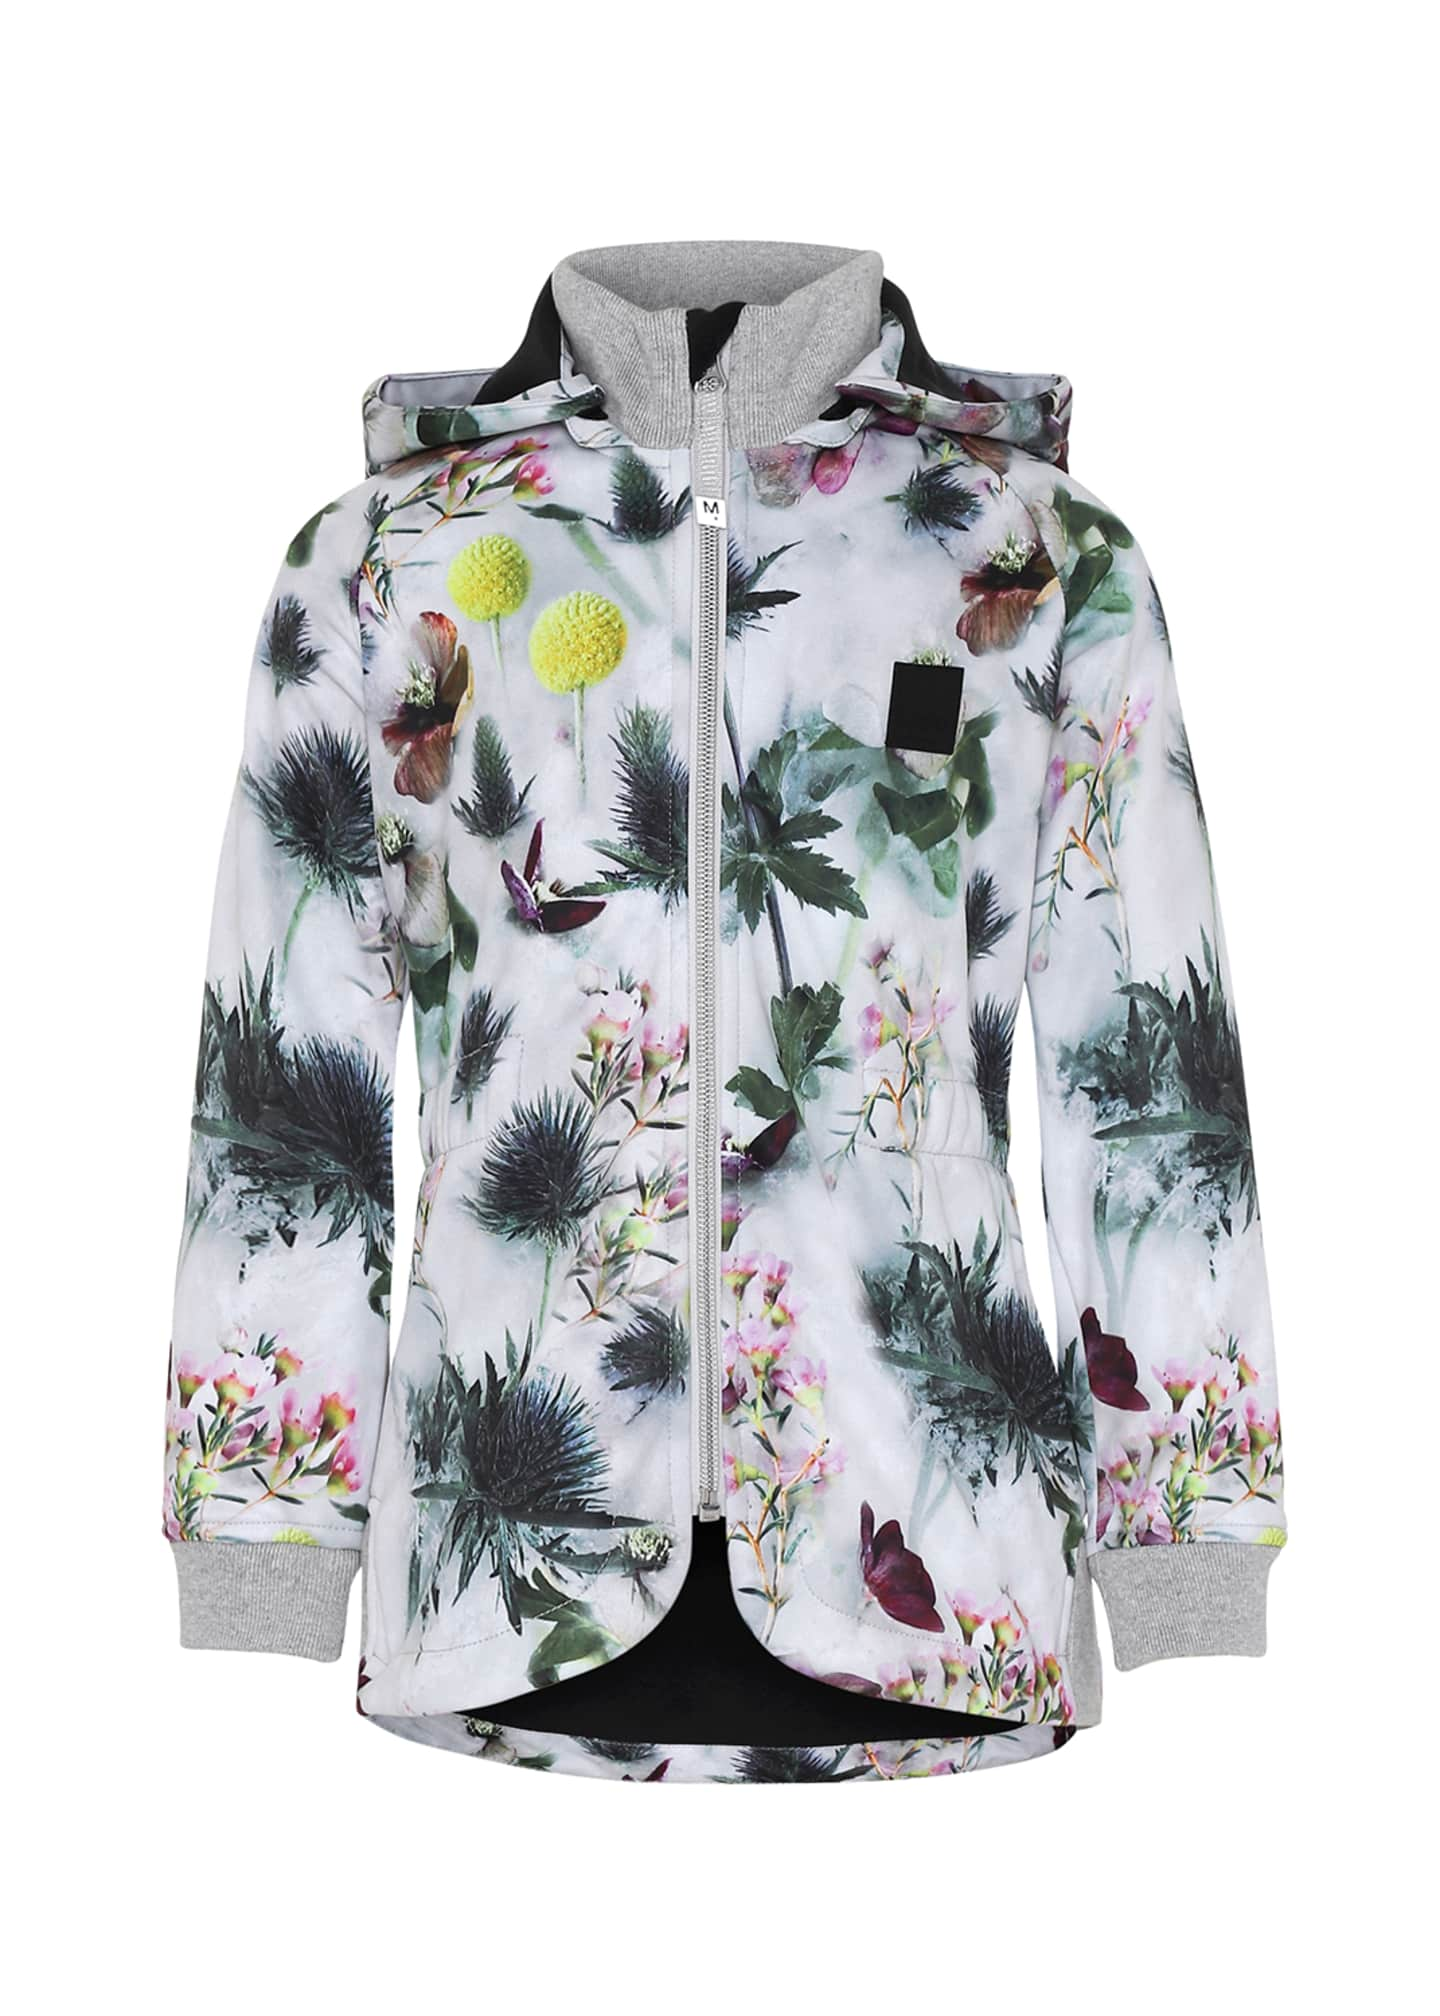 Molo Girl's Hillary Floral Print Waterproof Soft Shell